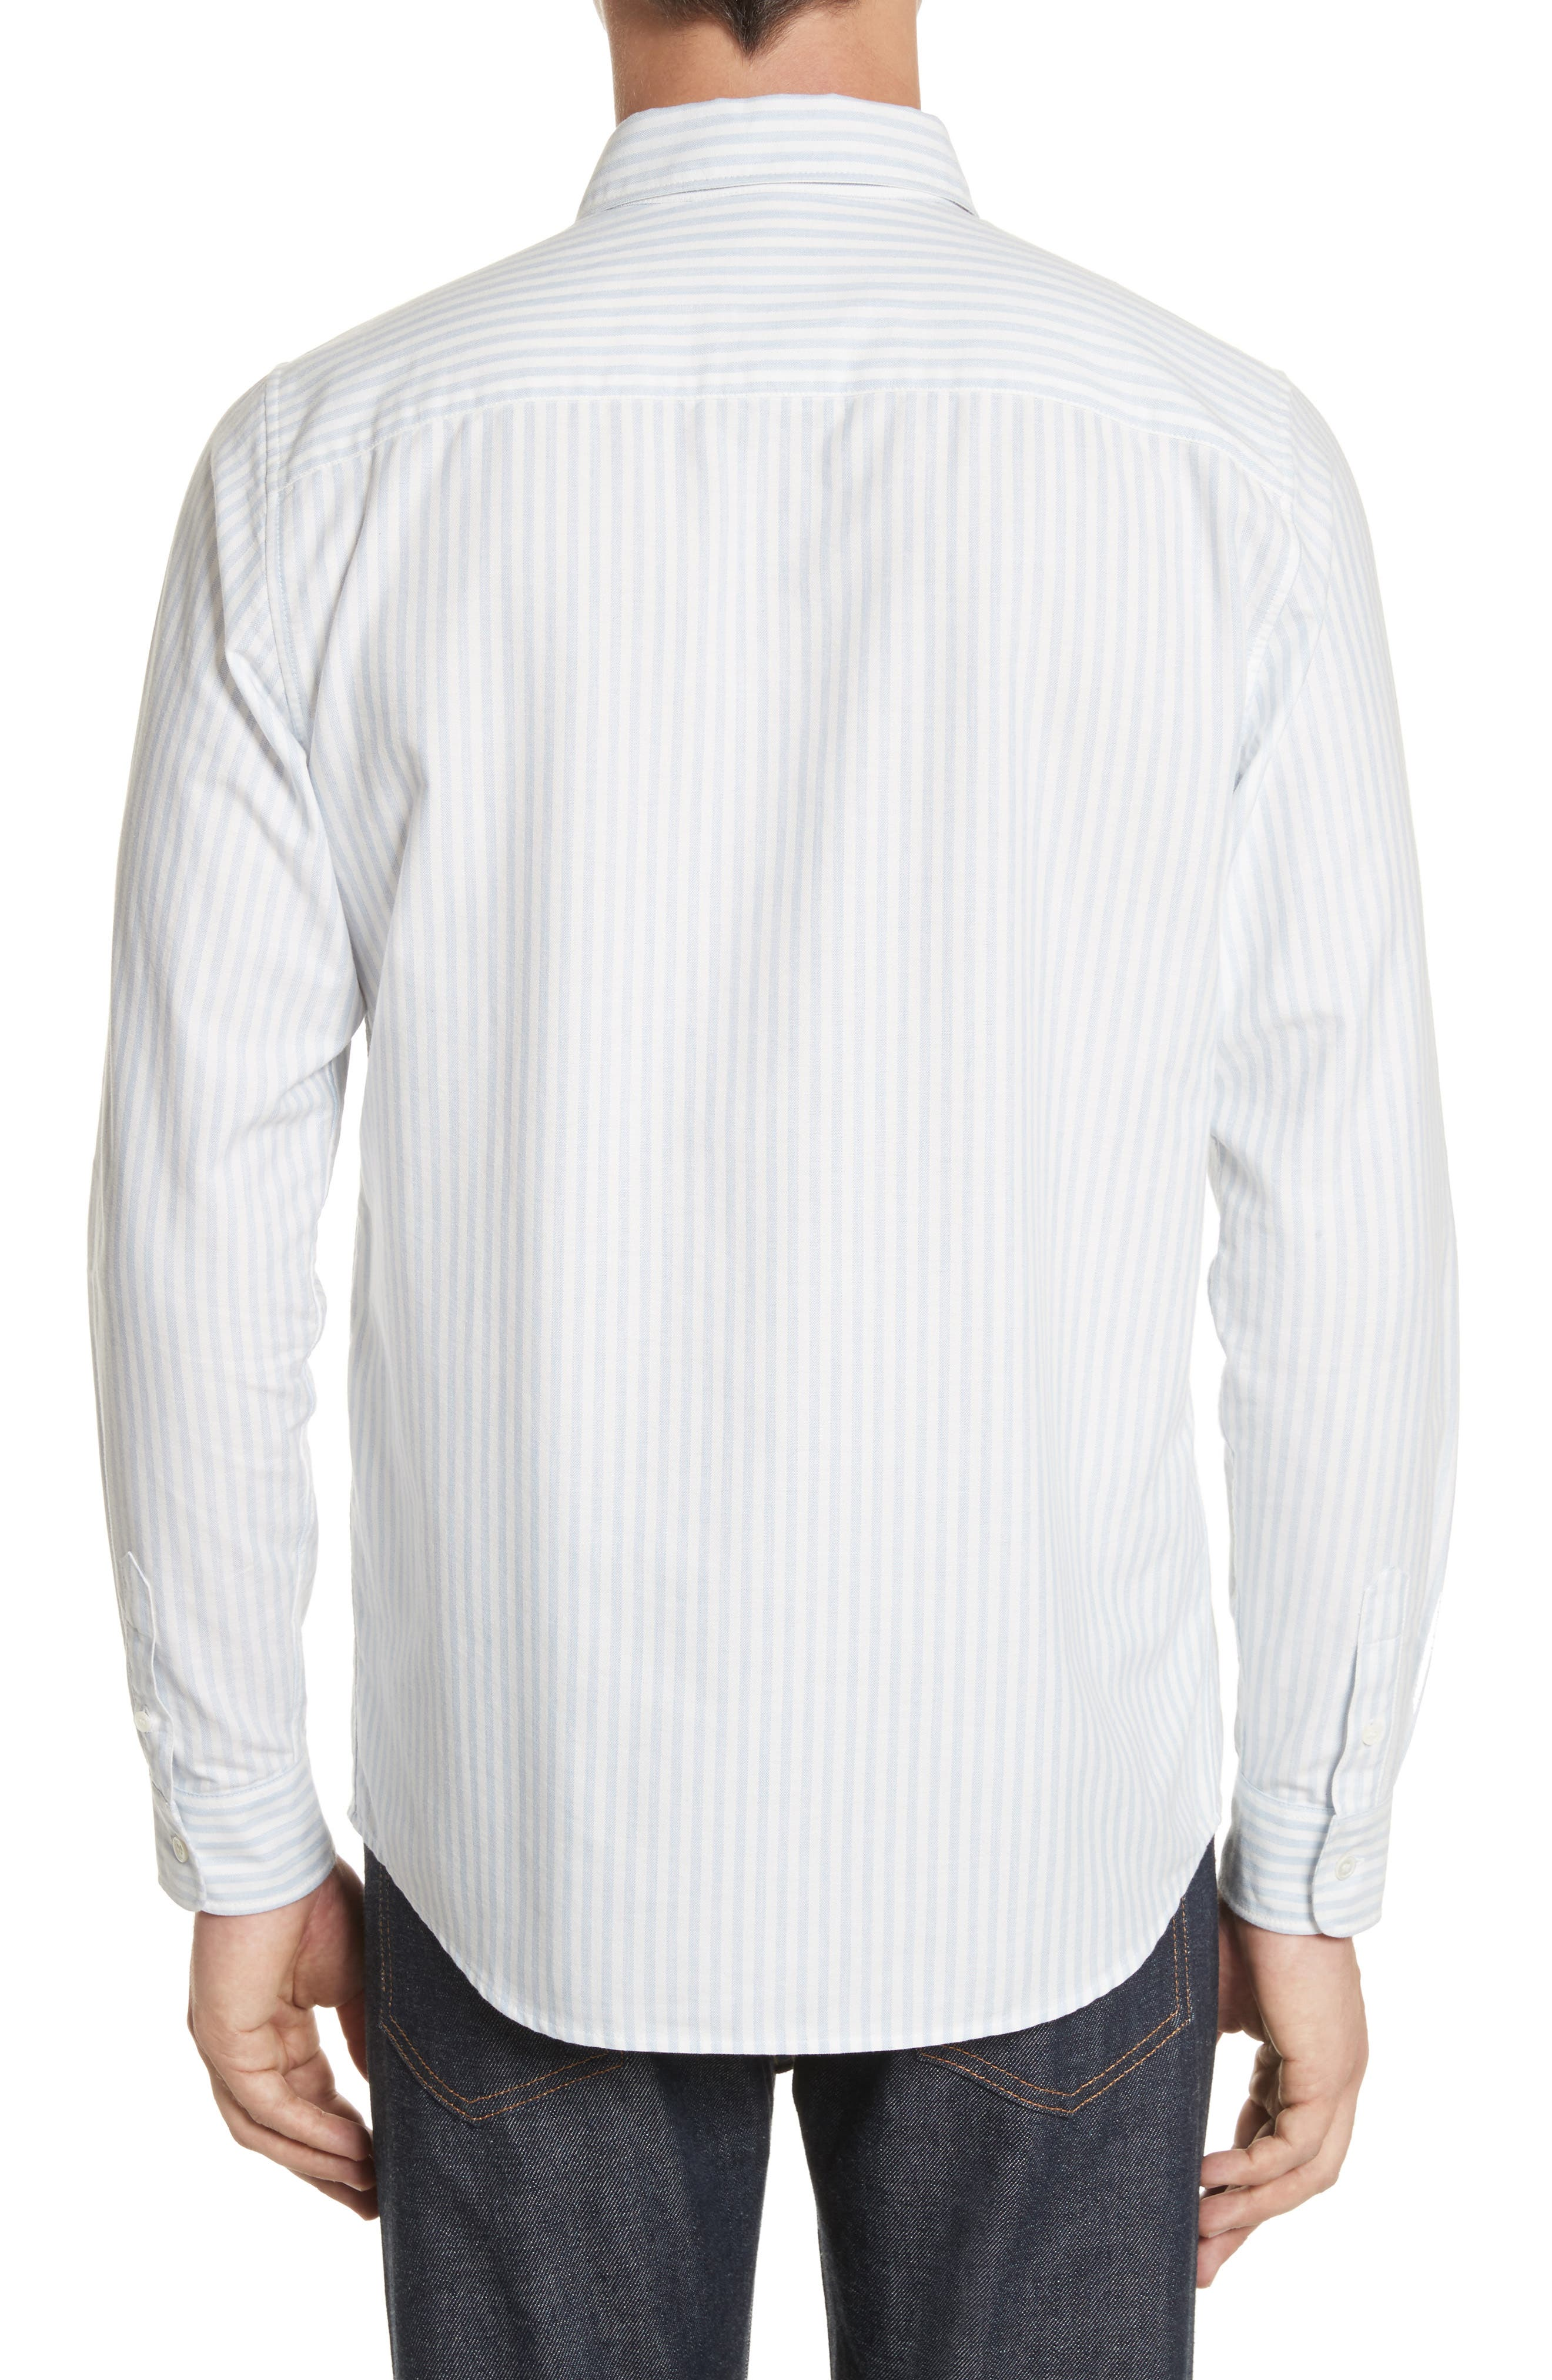 Oliver Stripe Oxford Shirt,                             Alternate thumbnail 3, color,                             Blue